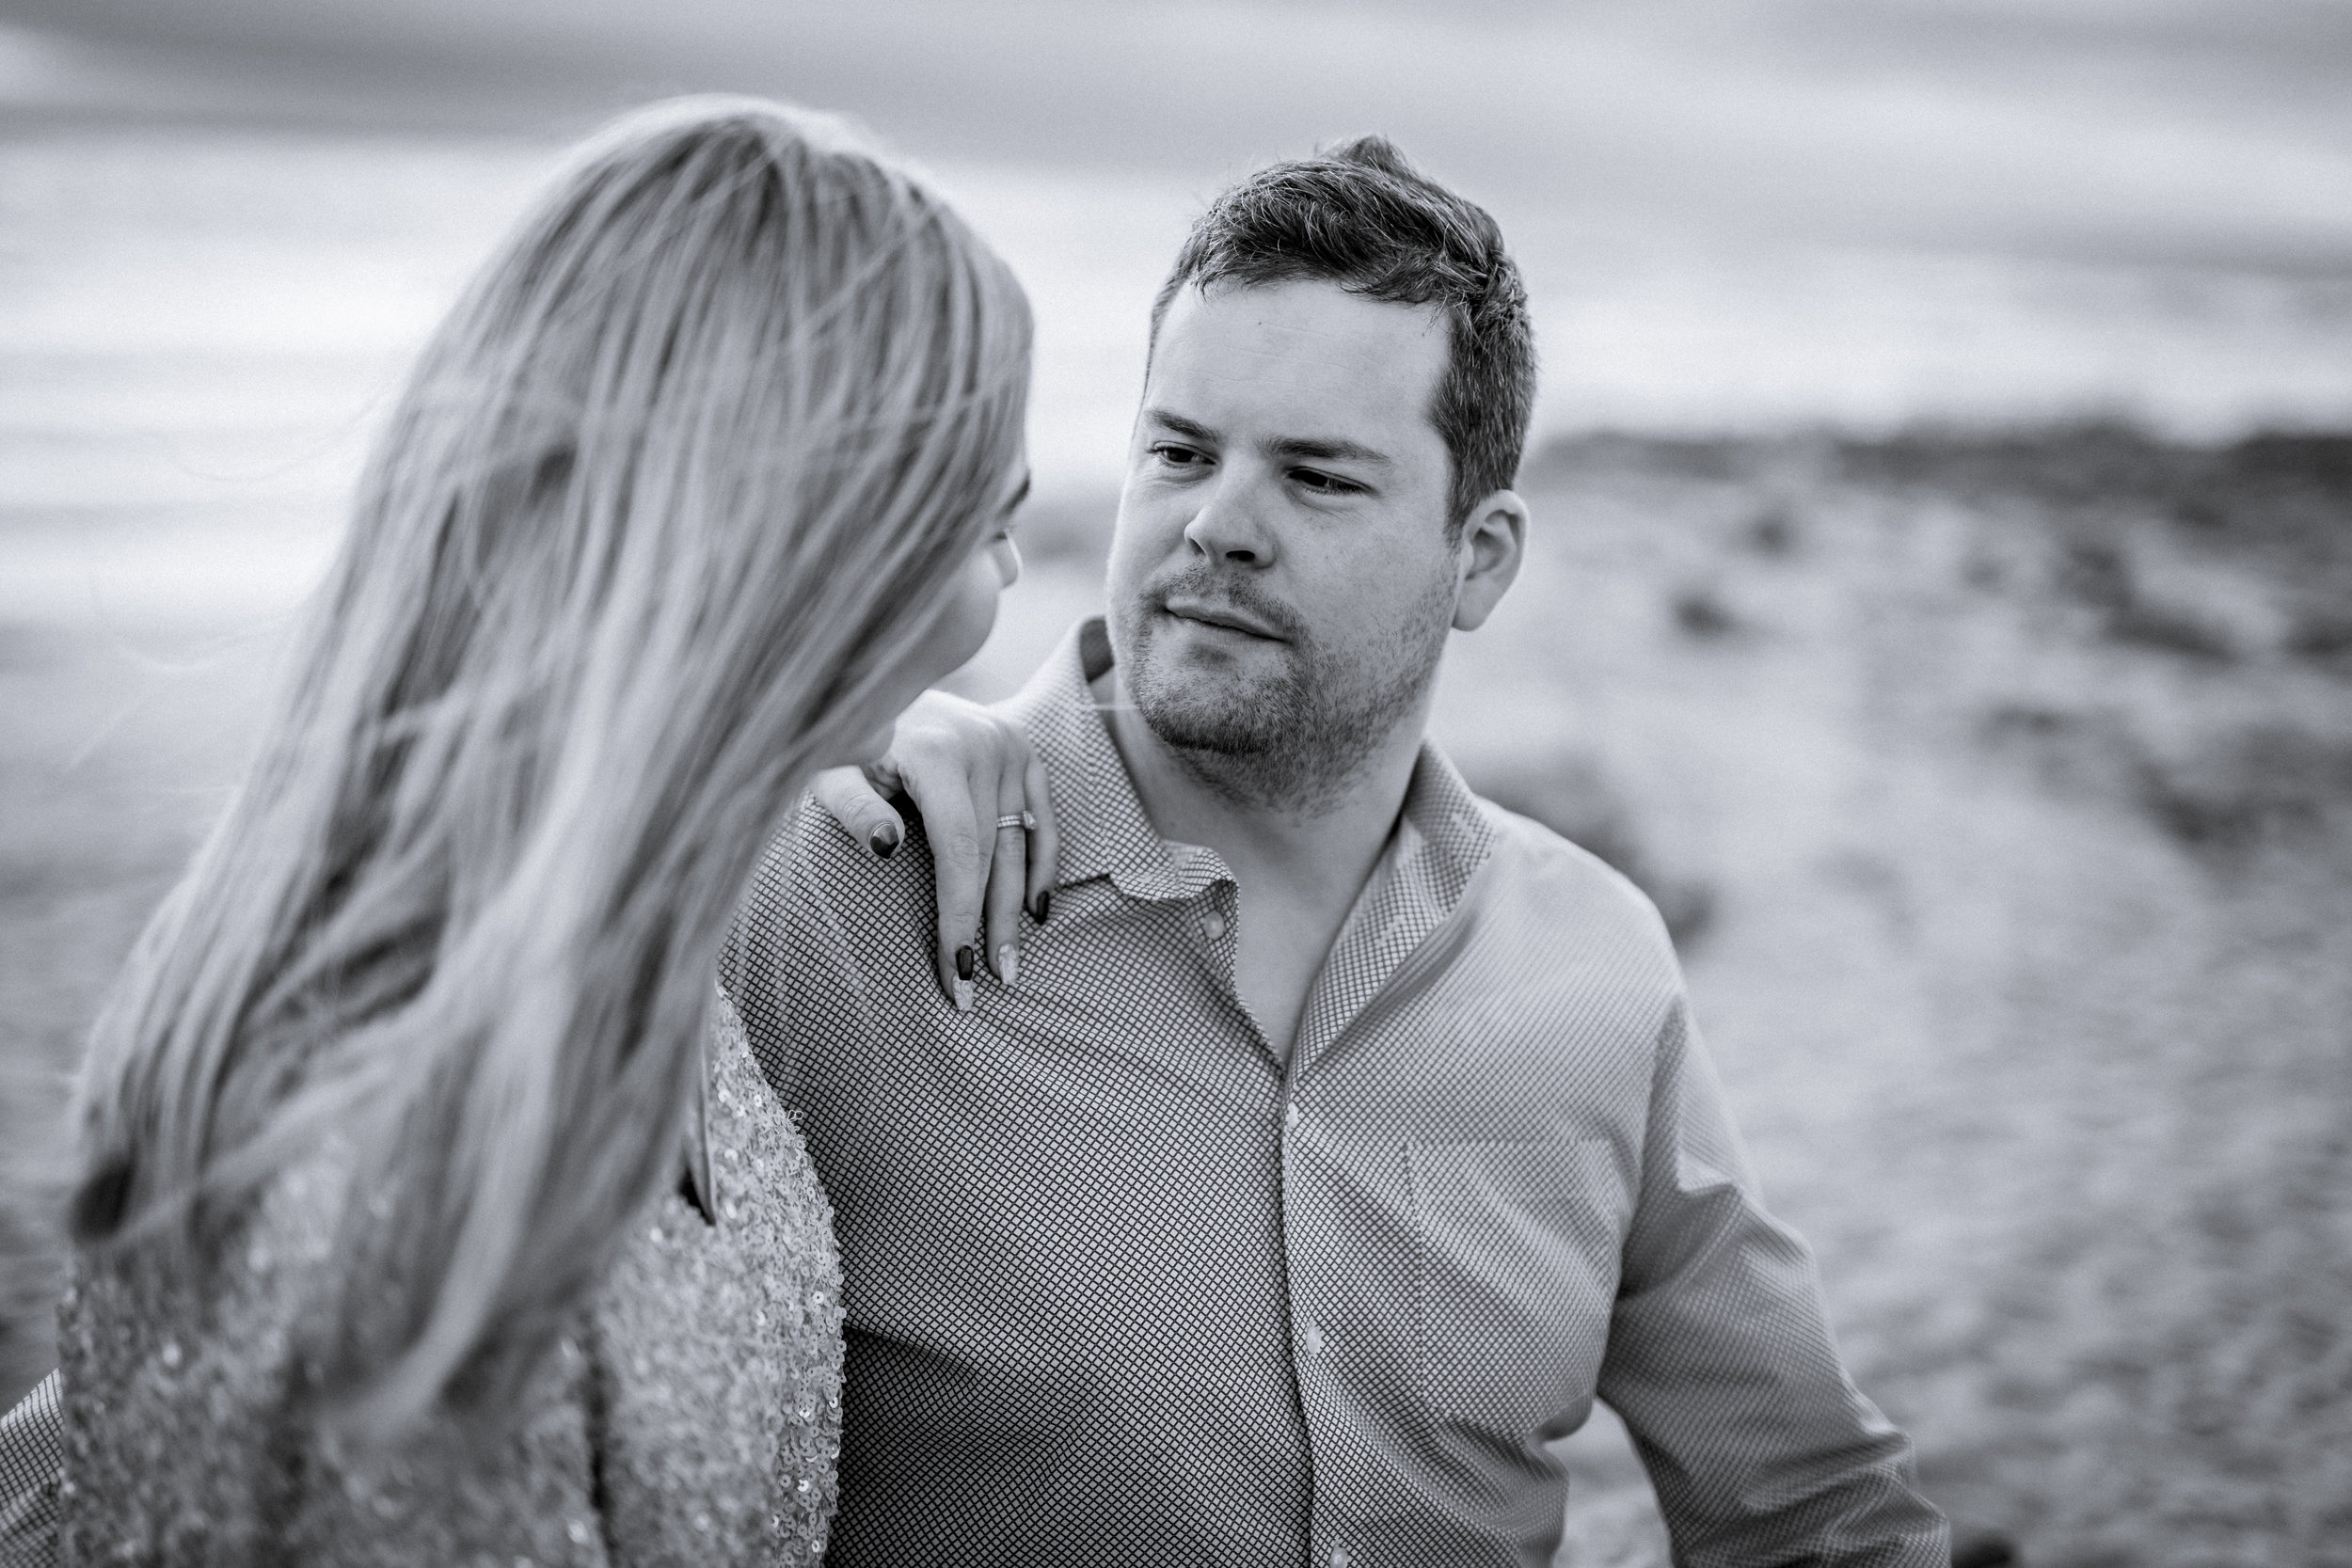 Odelya and Ralph - Cape Town Couples Beach_Seaside Photo session by Cape Image Co. (Large Files)-6.jpg